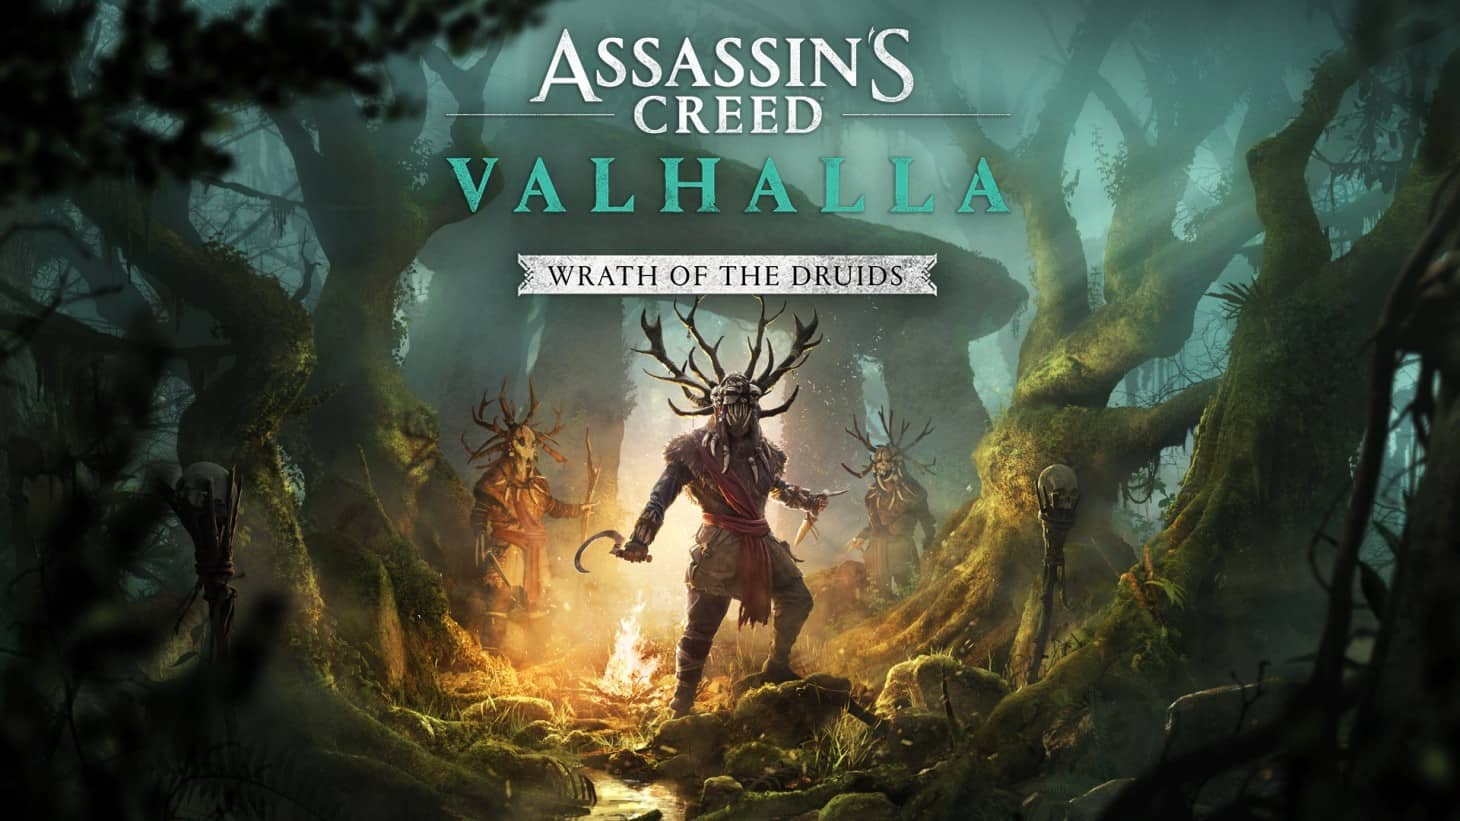 Assassins Creed Valhalla Wrath of the Druids DLC What To